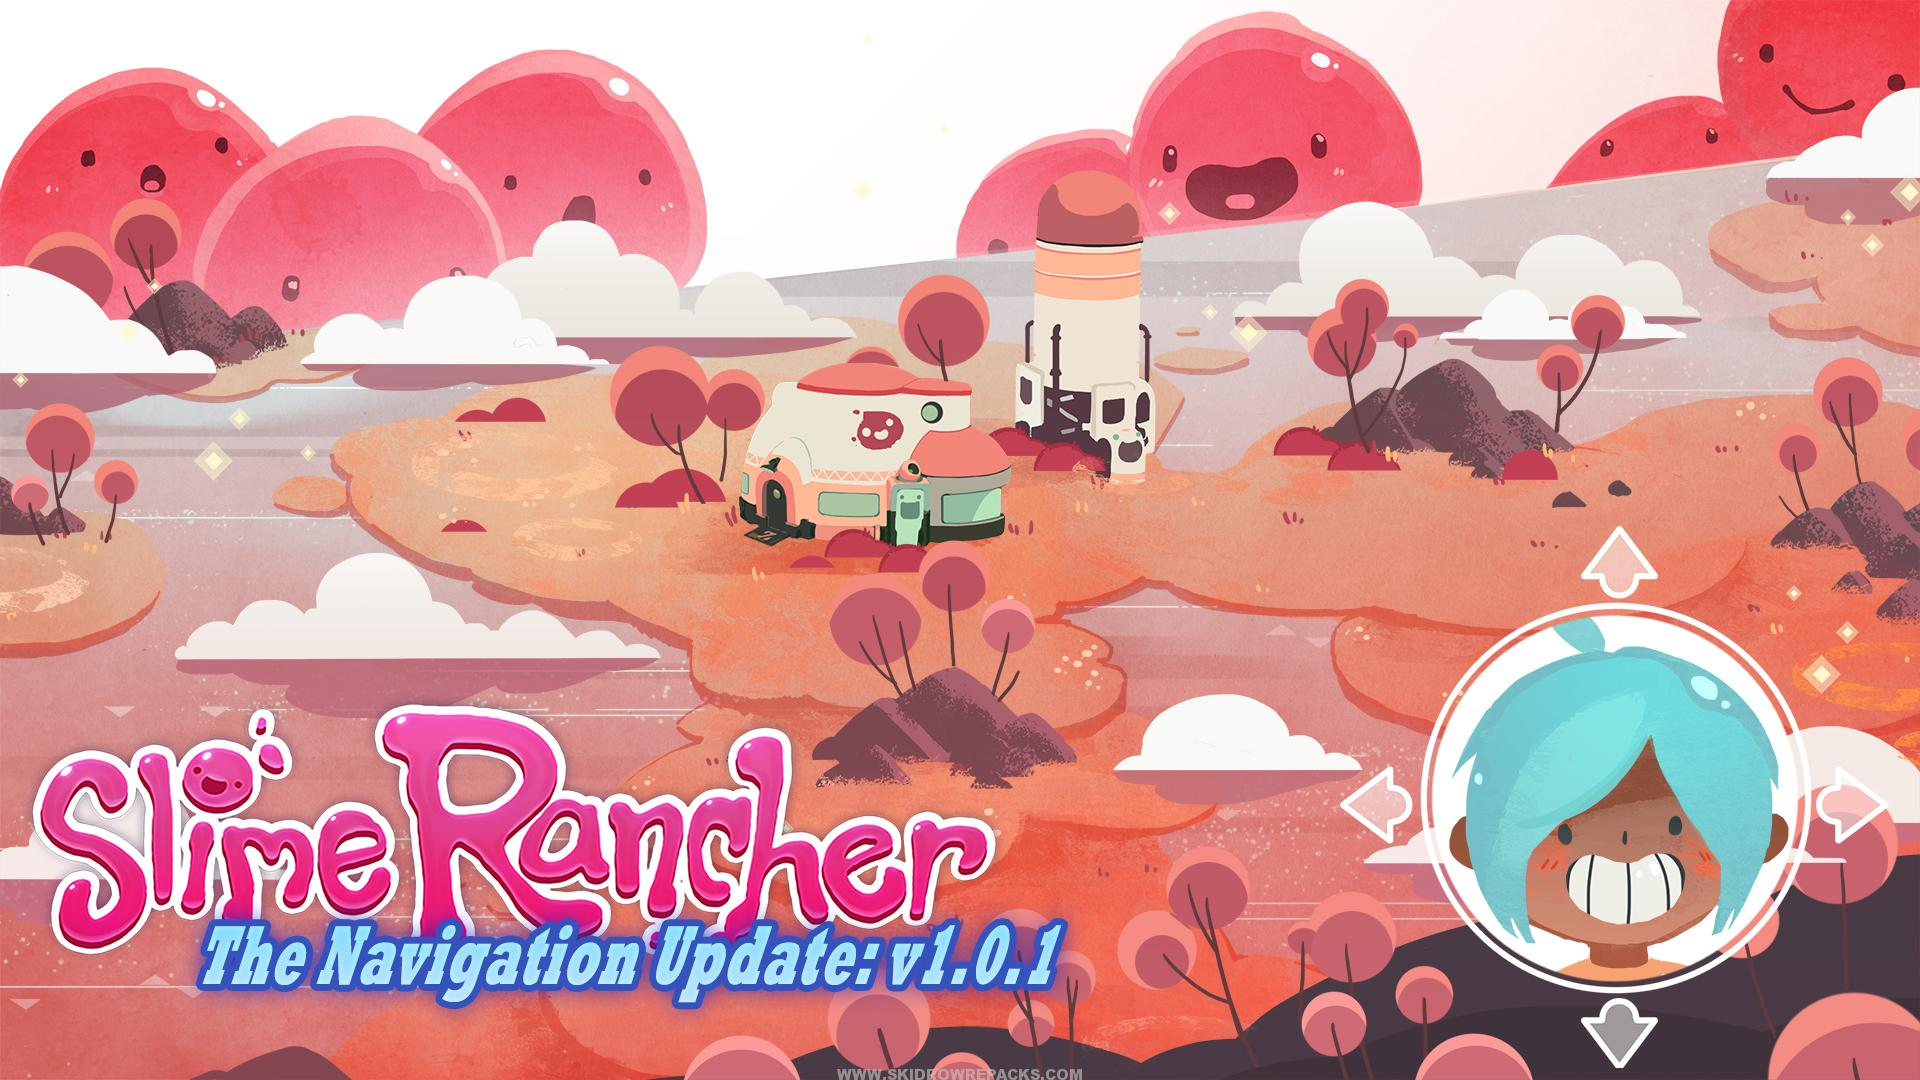 Slime Rancher v1.0.1 Full Game